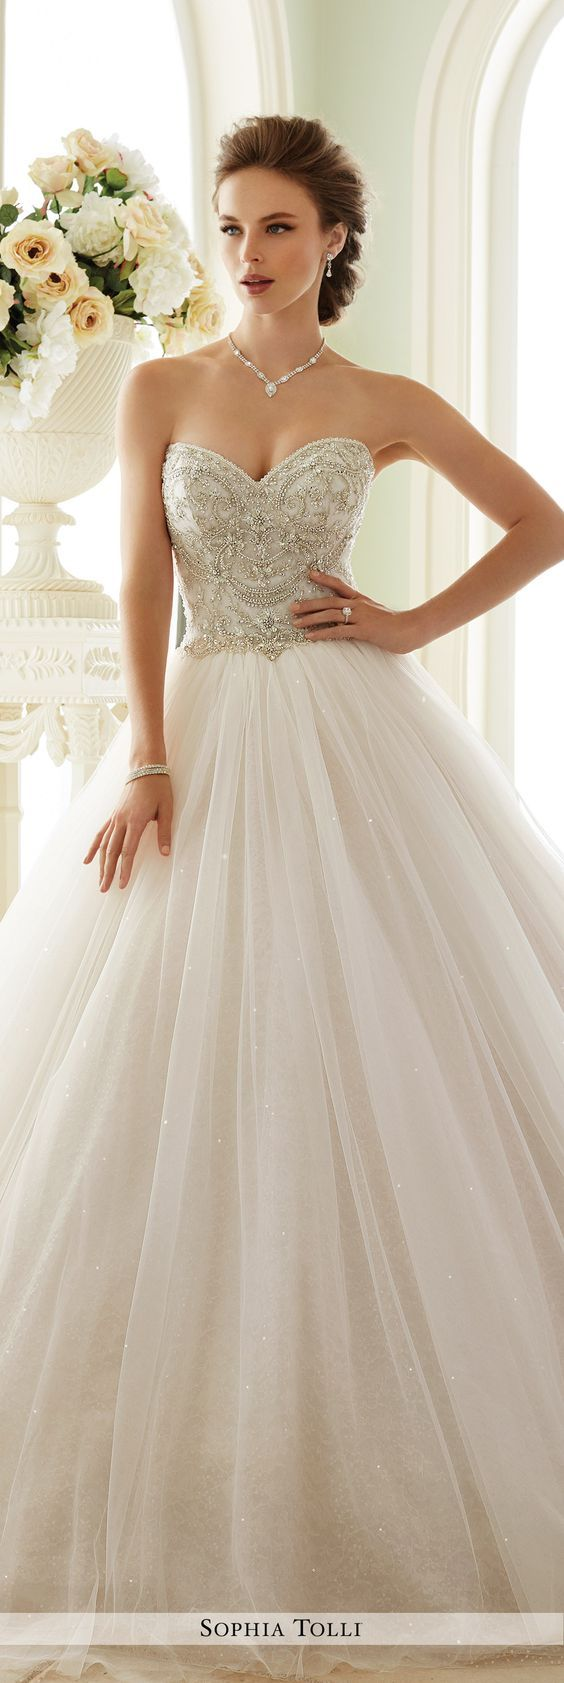 40 Sweetheart Wedding Dresses That Will Take Your Breath Away - Deer Pearl Flowers / http://www.deerpearlflowers.com/sweetheart-wedding-dresses/